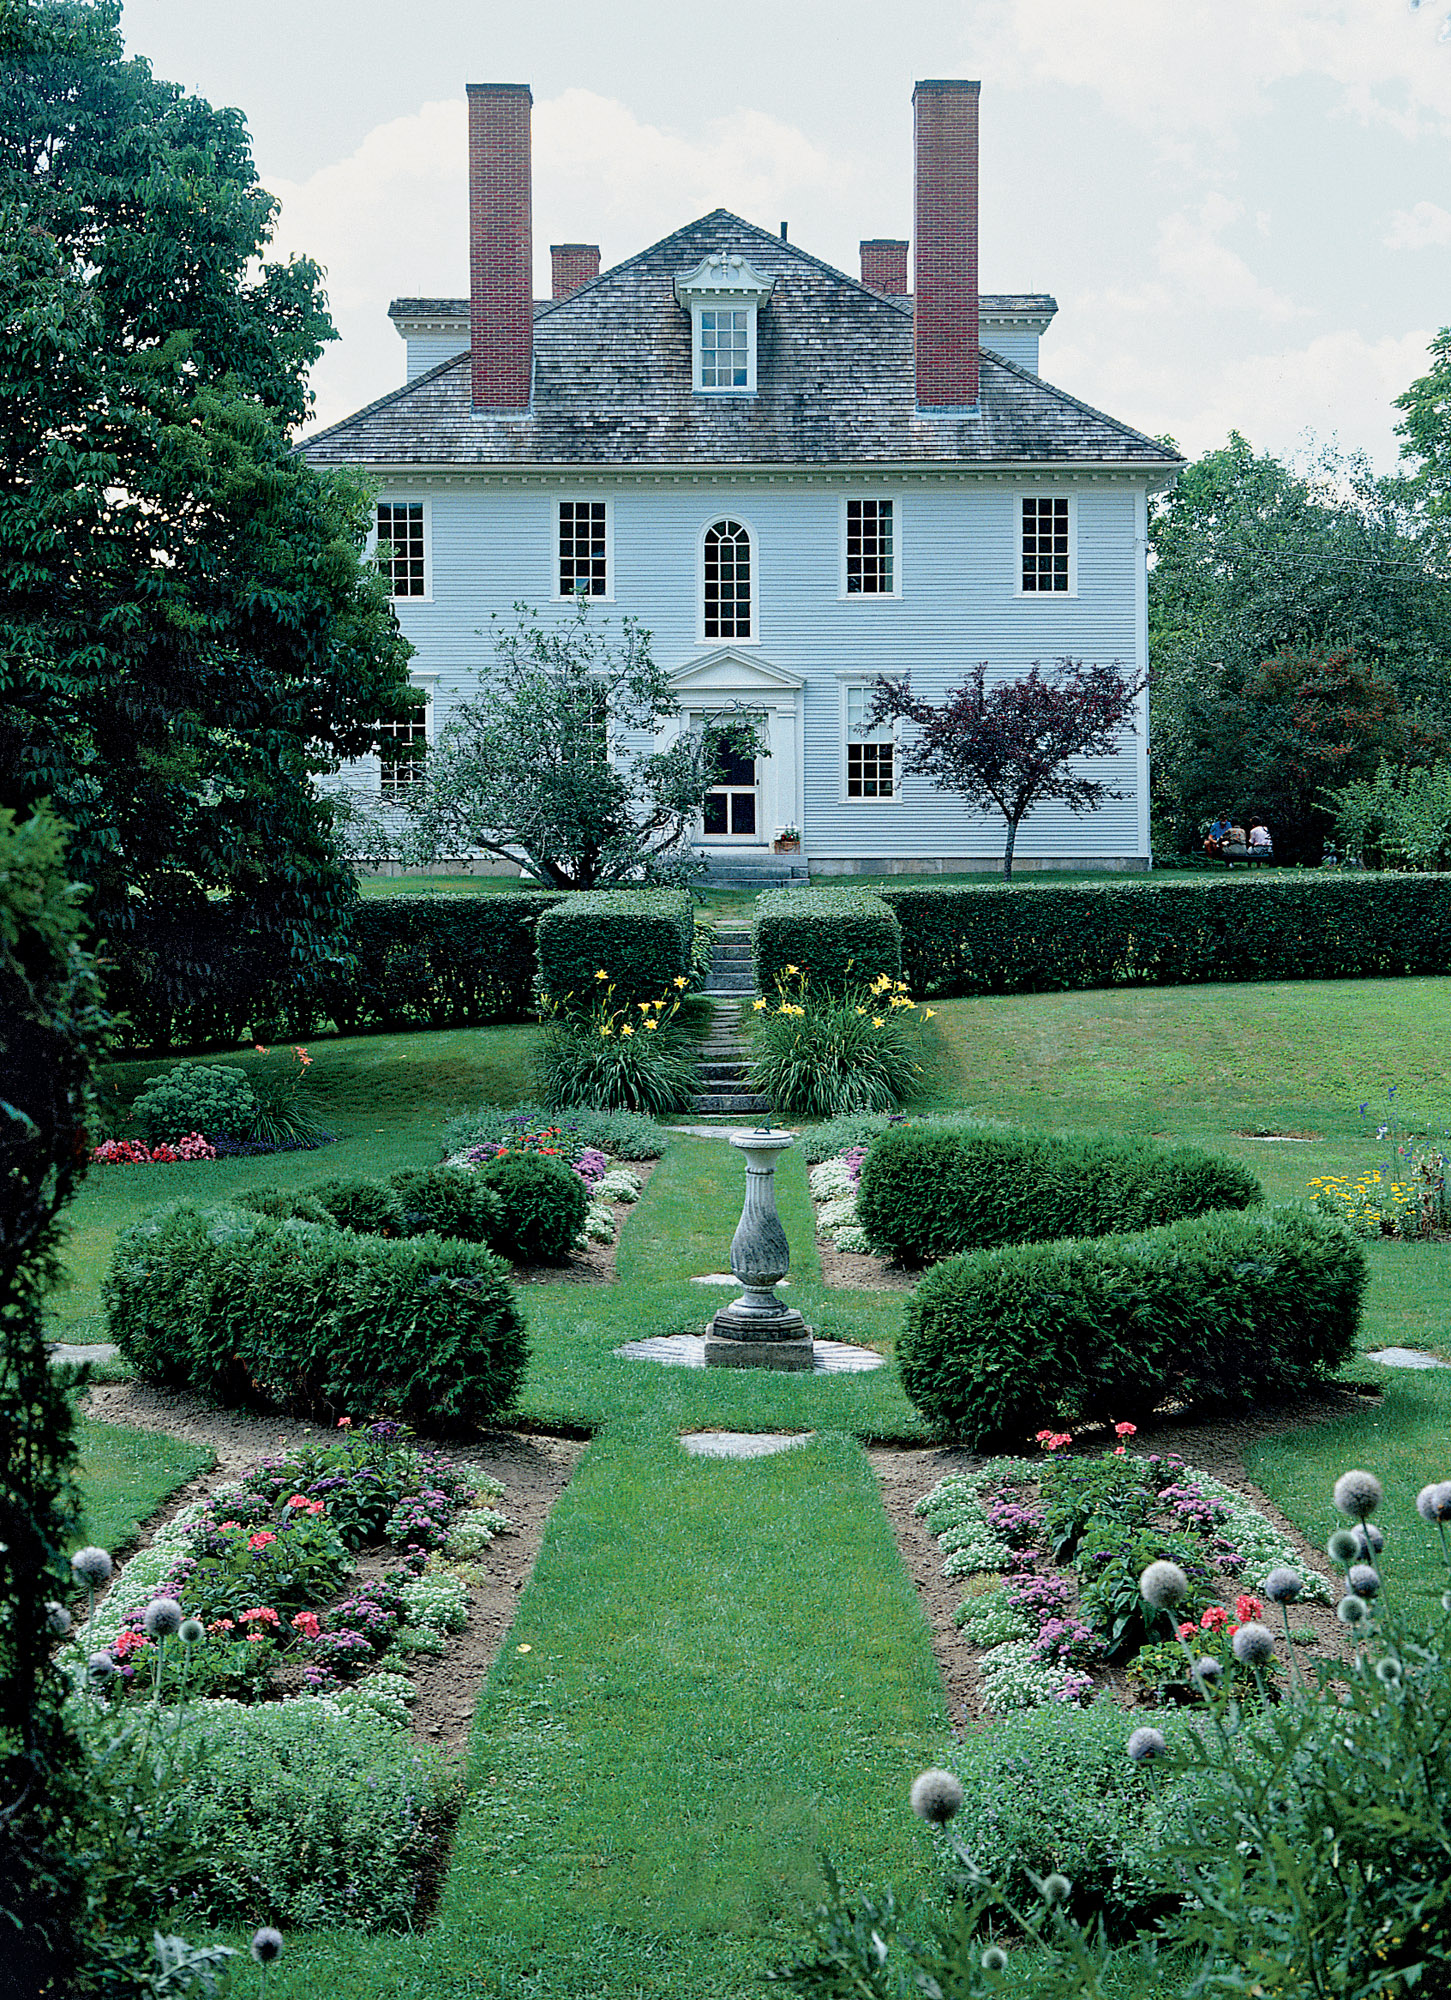 Hamilton House in South Berwick, Maine, is a great study example: a hipped-roof Georgian of 1785, it was restored and its garden interpreted during the early days of the Colonial Revival. The garden becomes an extension of the architecture.